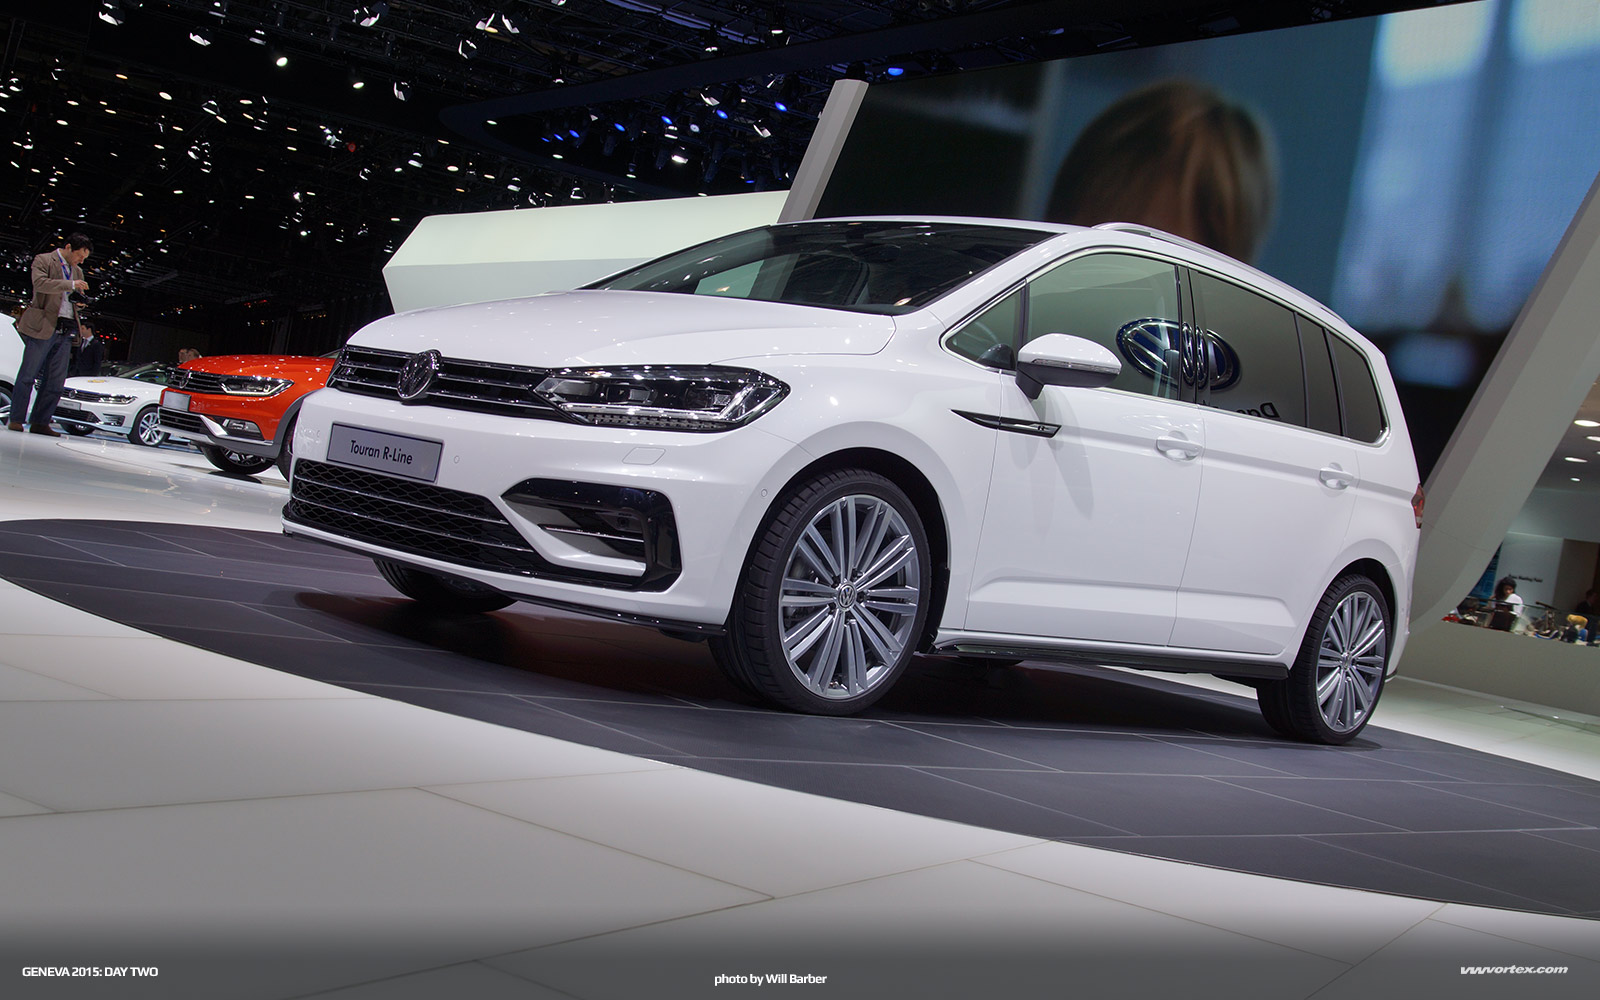 Geneva-2015-Day-Two-Volkswagen-Group-457